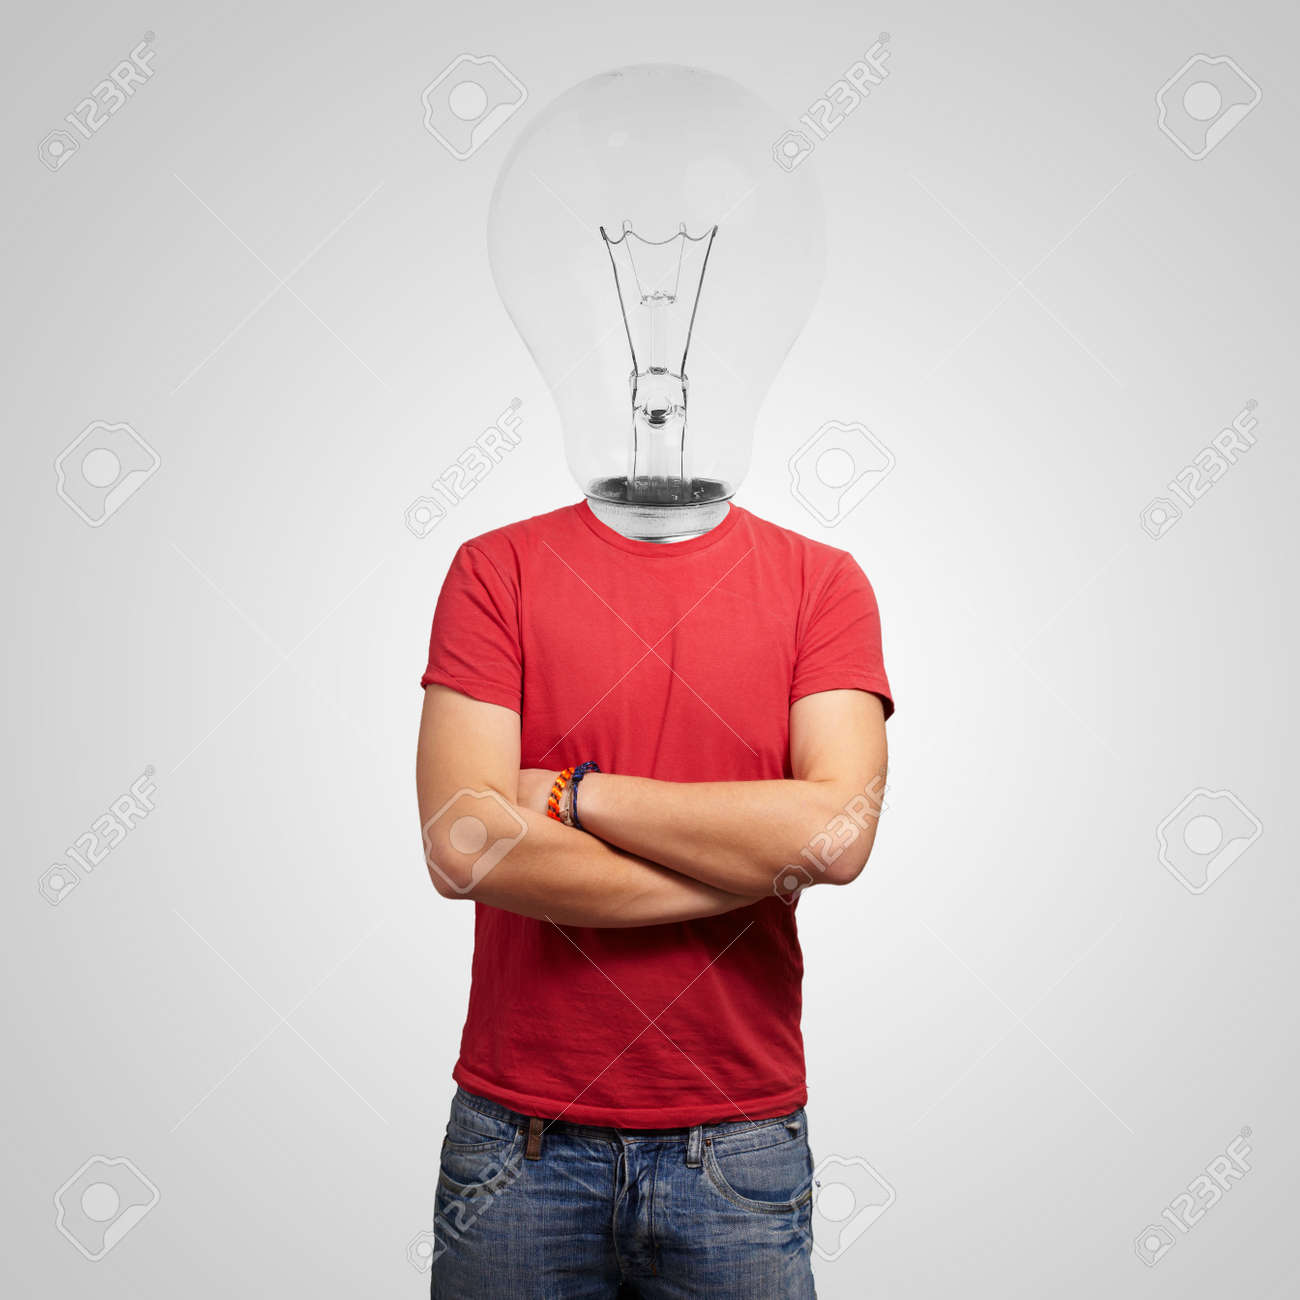 Portrait Of Man With Light Bulb Head Stock Photo - 13188794